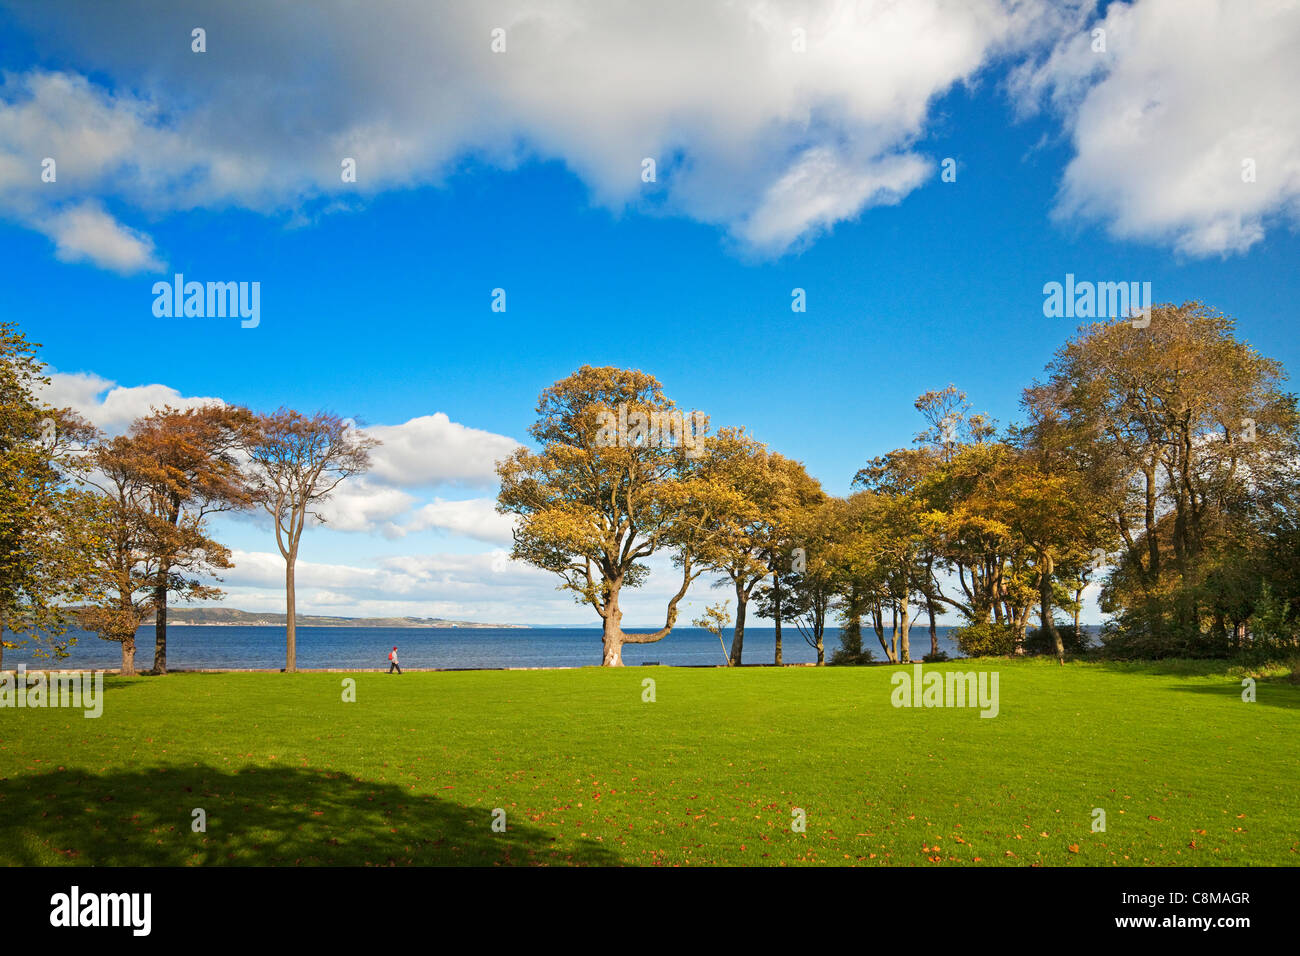 Walker on Cramond Foreshore, Edinburgh - Stock Image